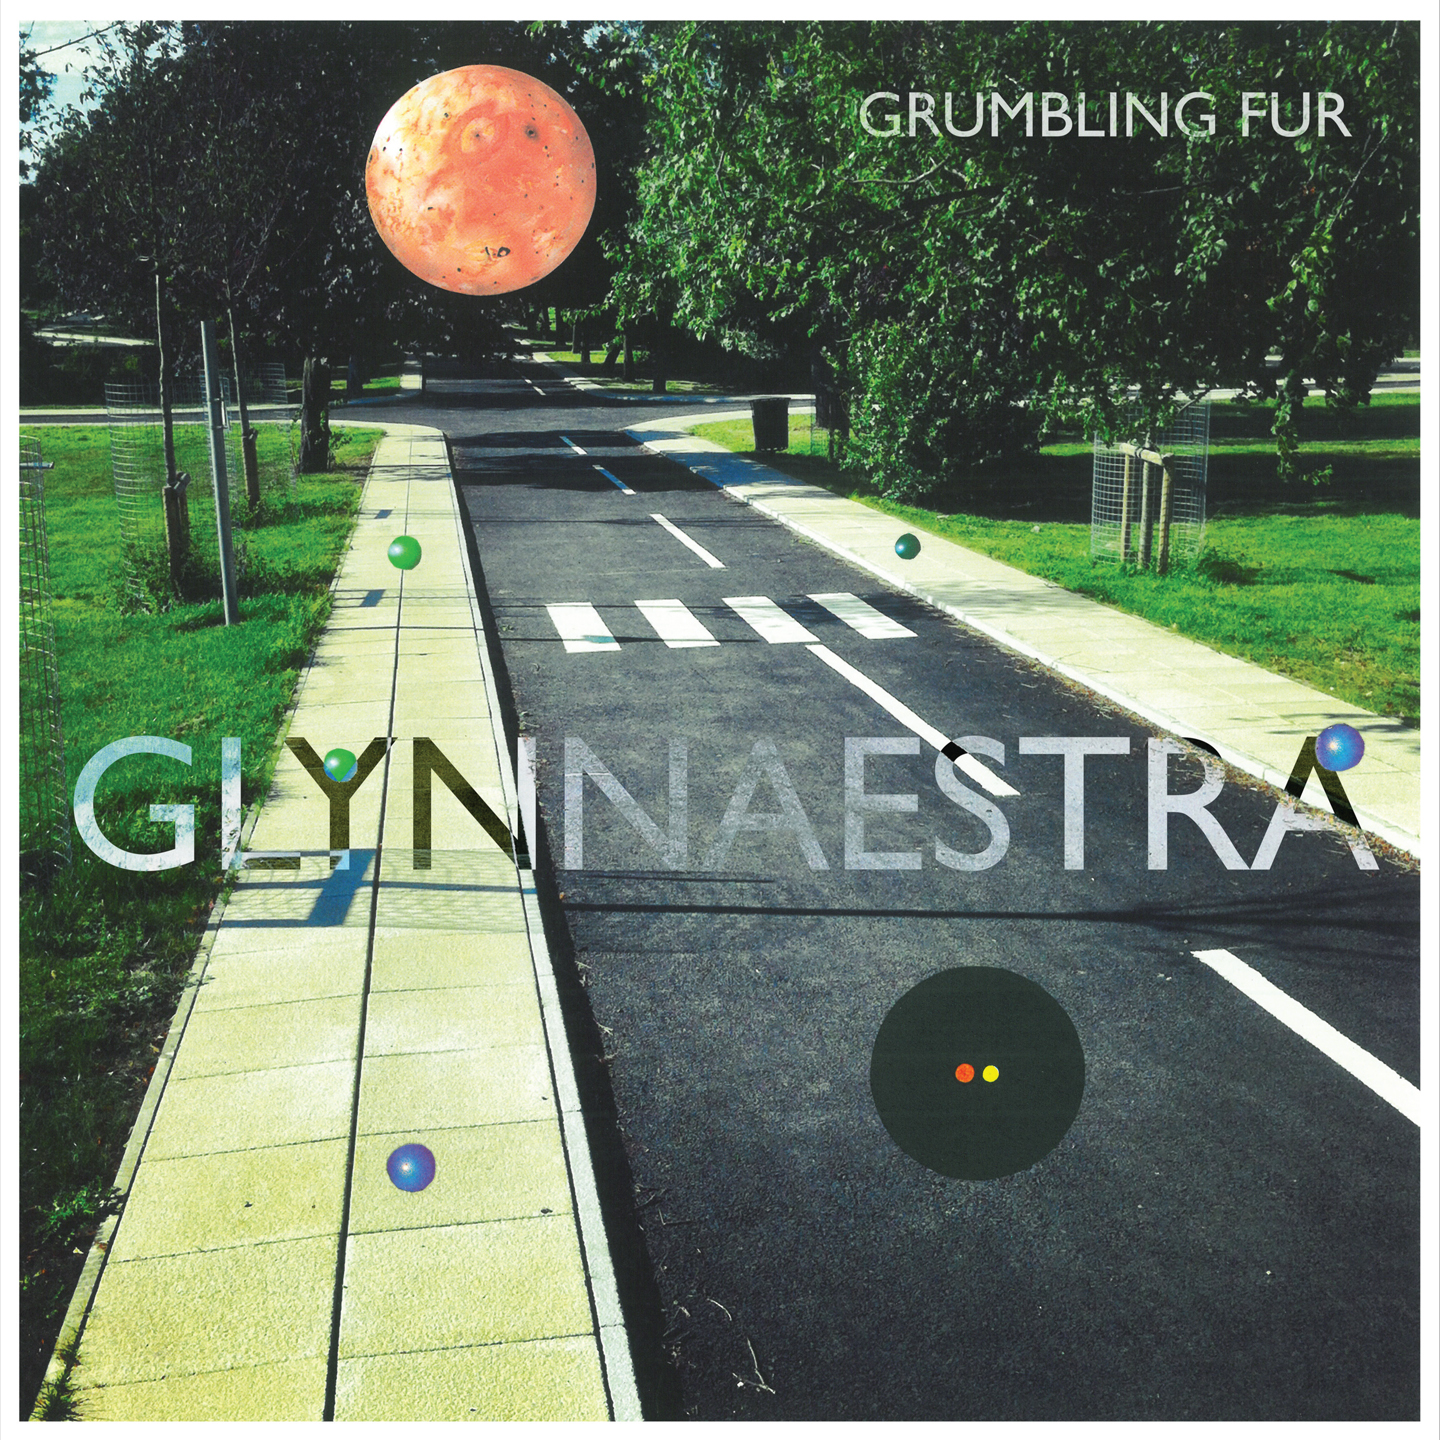 Grumbling Fur – Glynnaestra Review